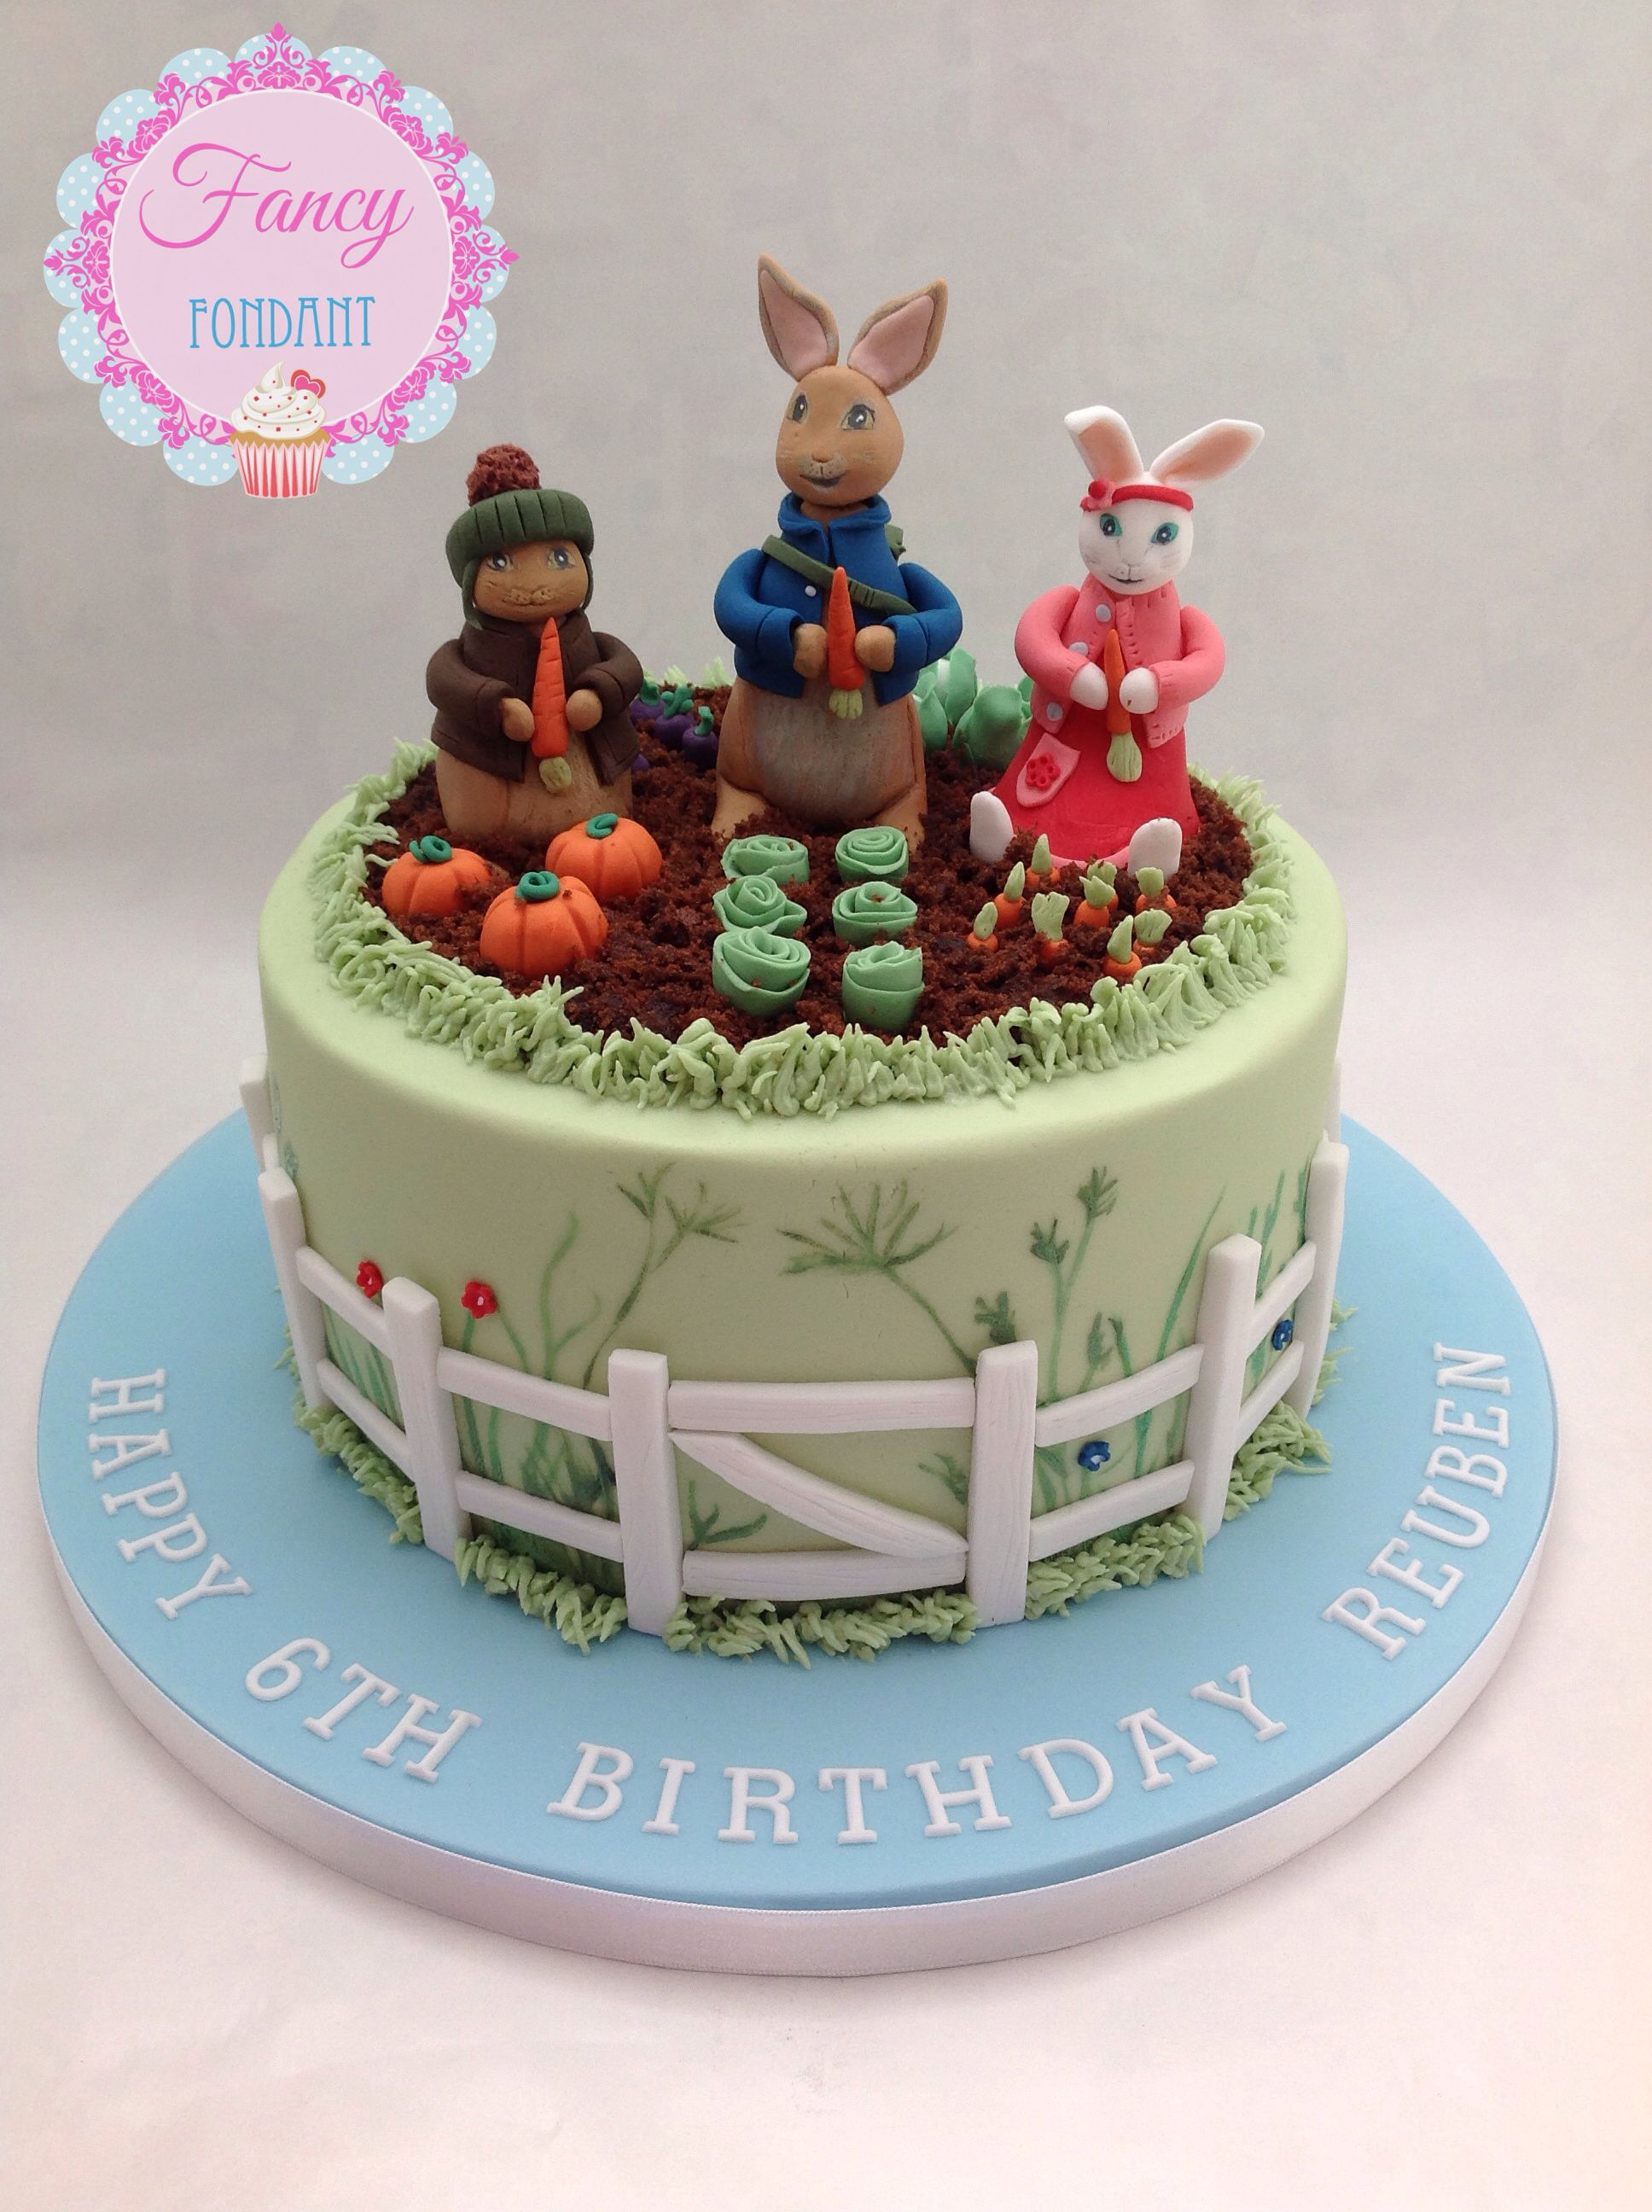 Cake Decorating Tv Show : A Beatrix Potter Peter Rabbit cake modelled from the TV ...